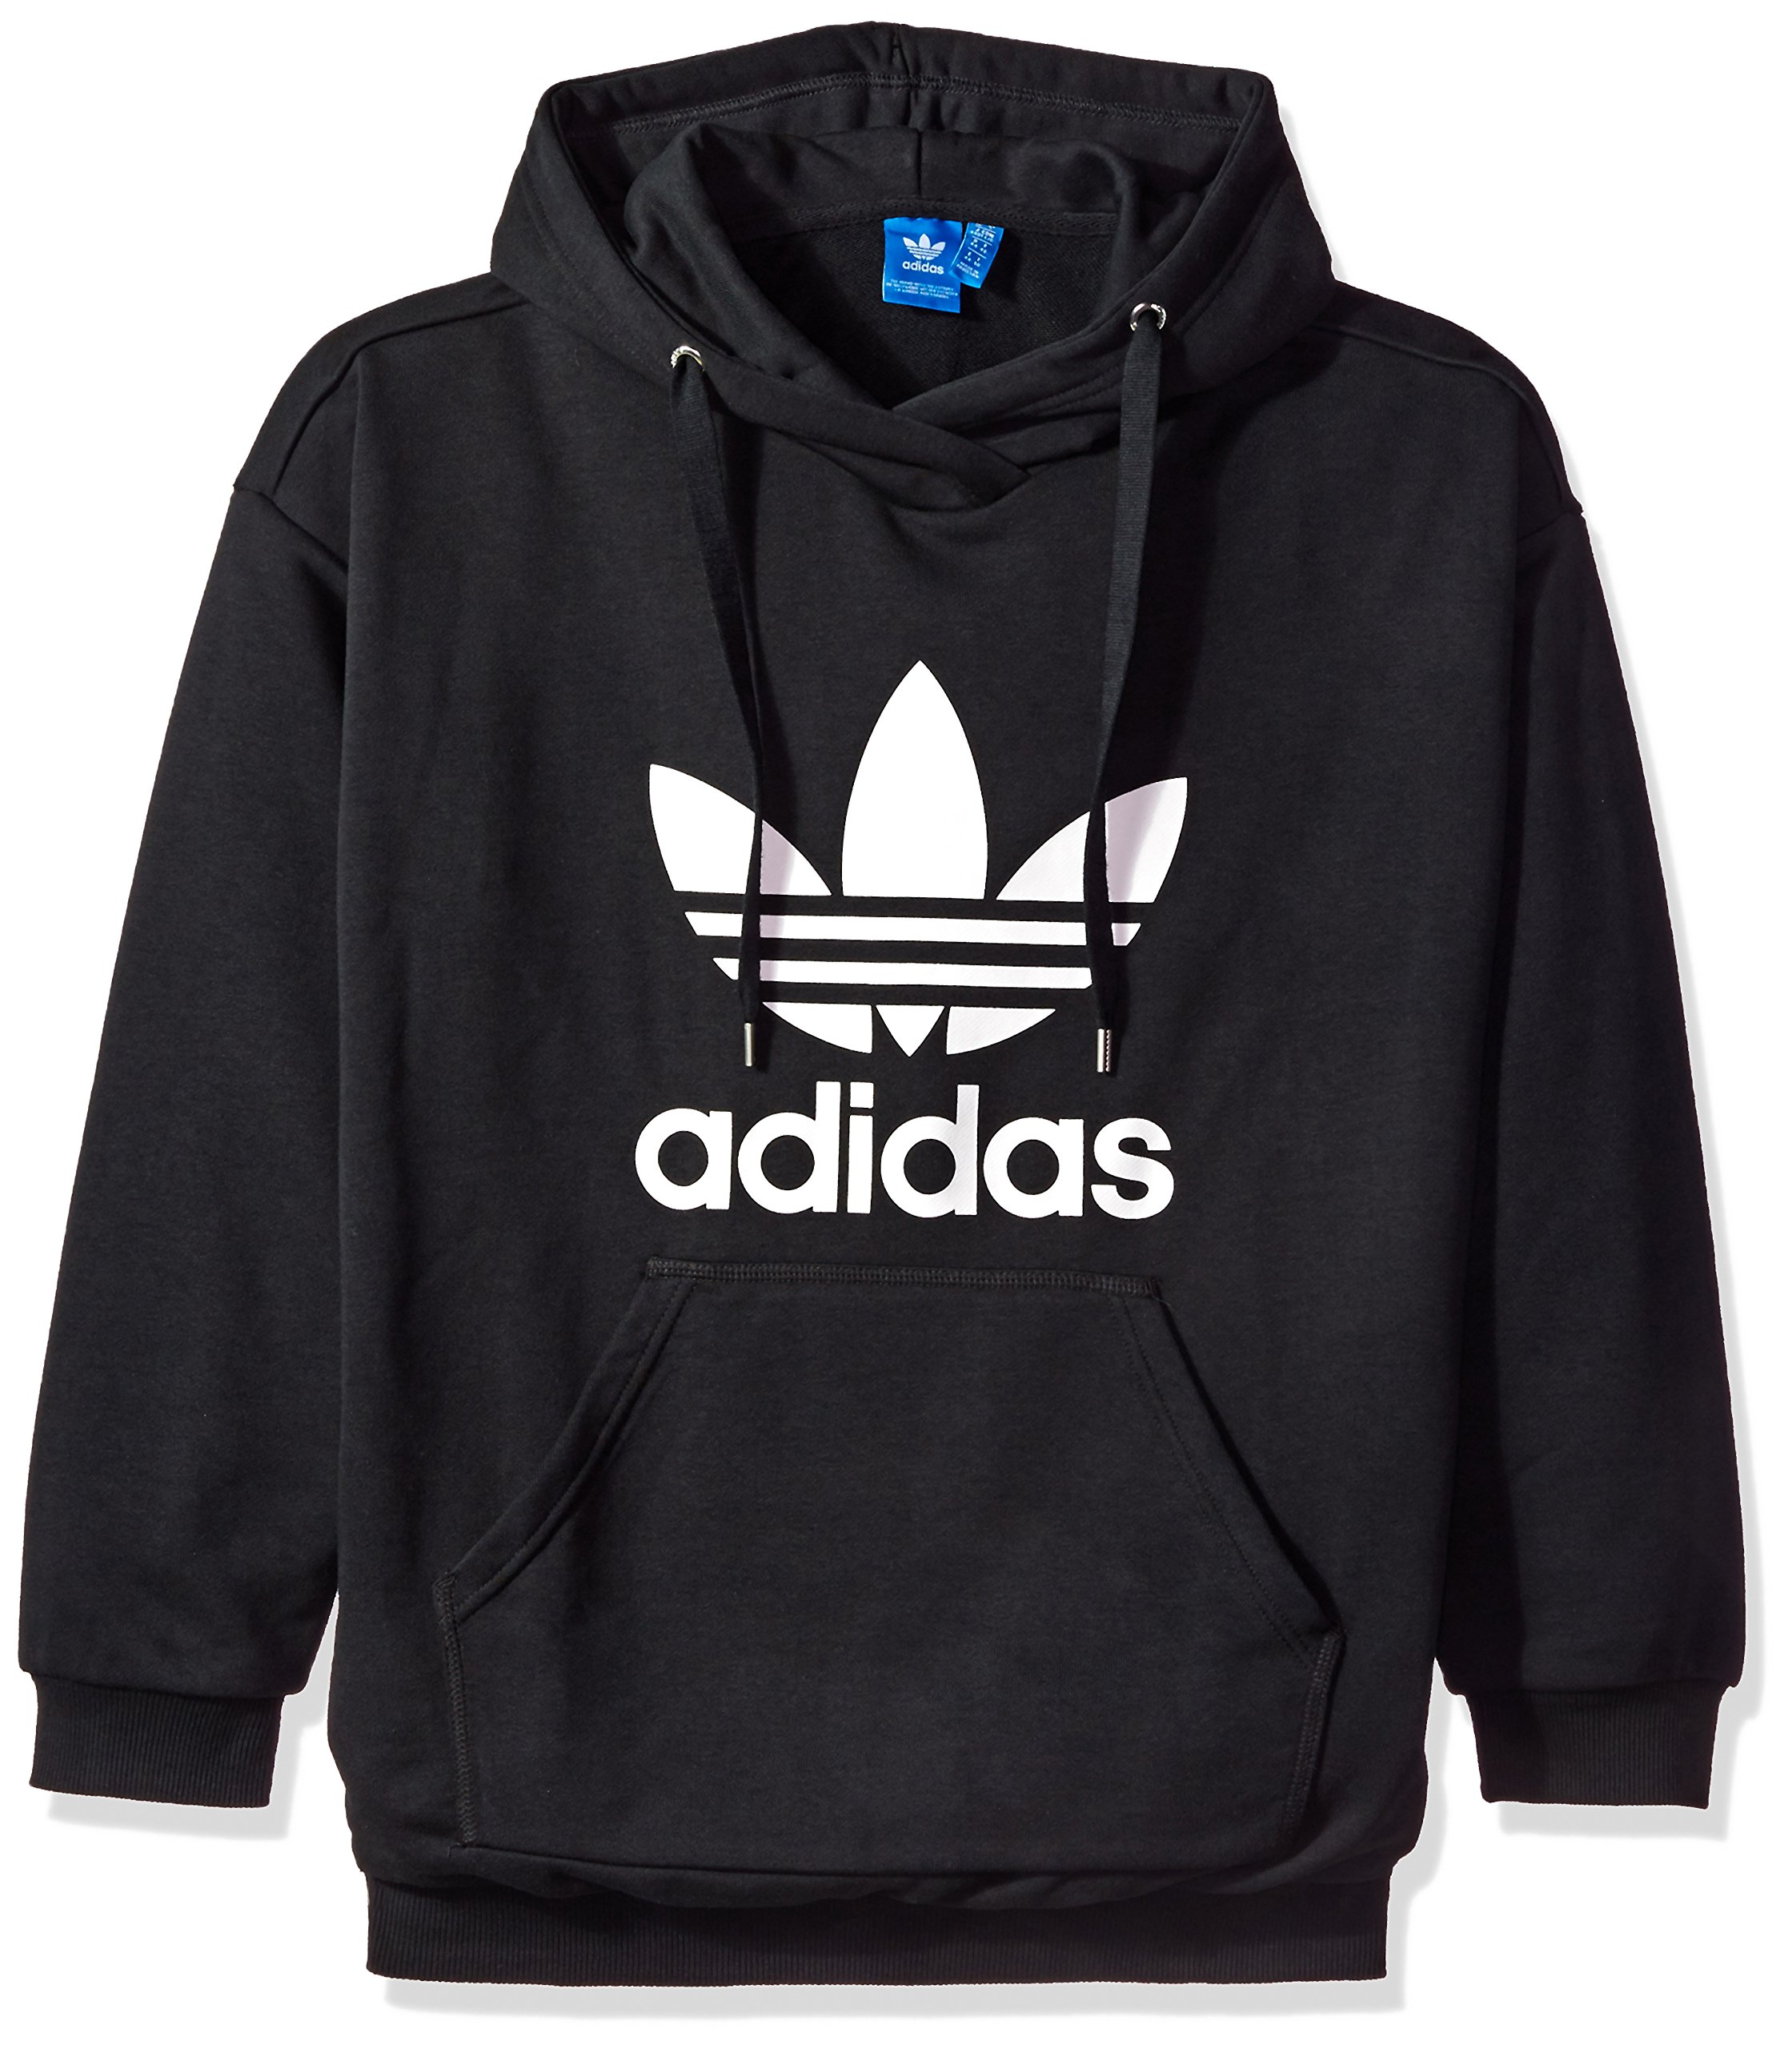 adidas Originals Women's Outerwear | Trefoil Hoodie, Black/French Terry, X-Small